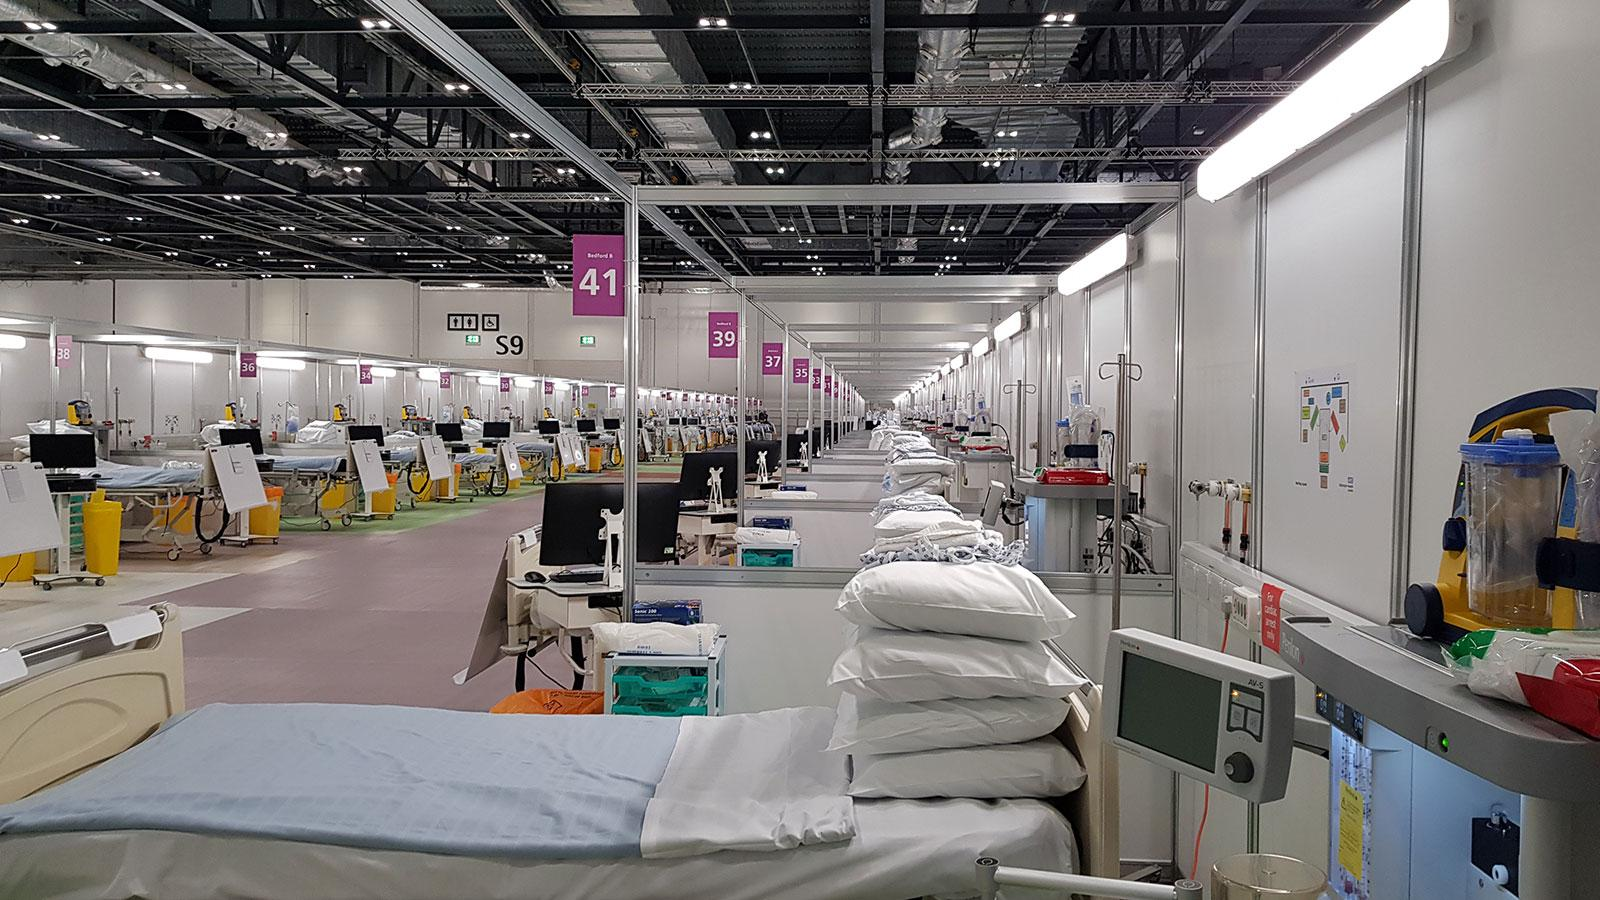 inside an NHS Nightingale Field Hospital set up inside a convention centre, showing rows of hospital beds and equipment bays